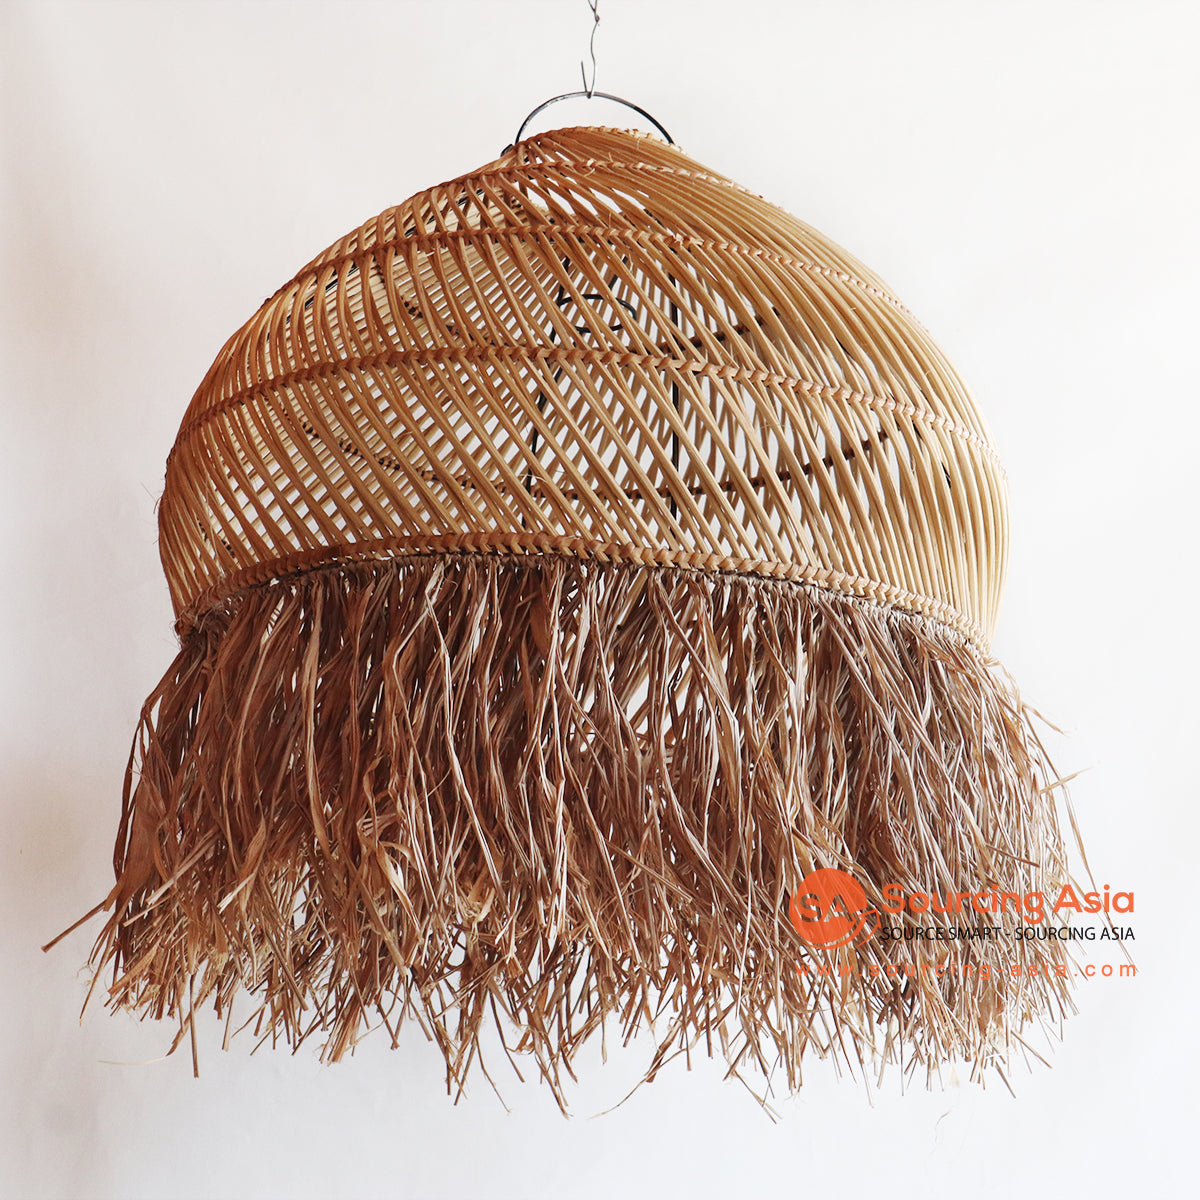 YLLC045 RATTAN HANGING LAMP WITH FRINGE